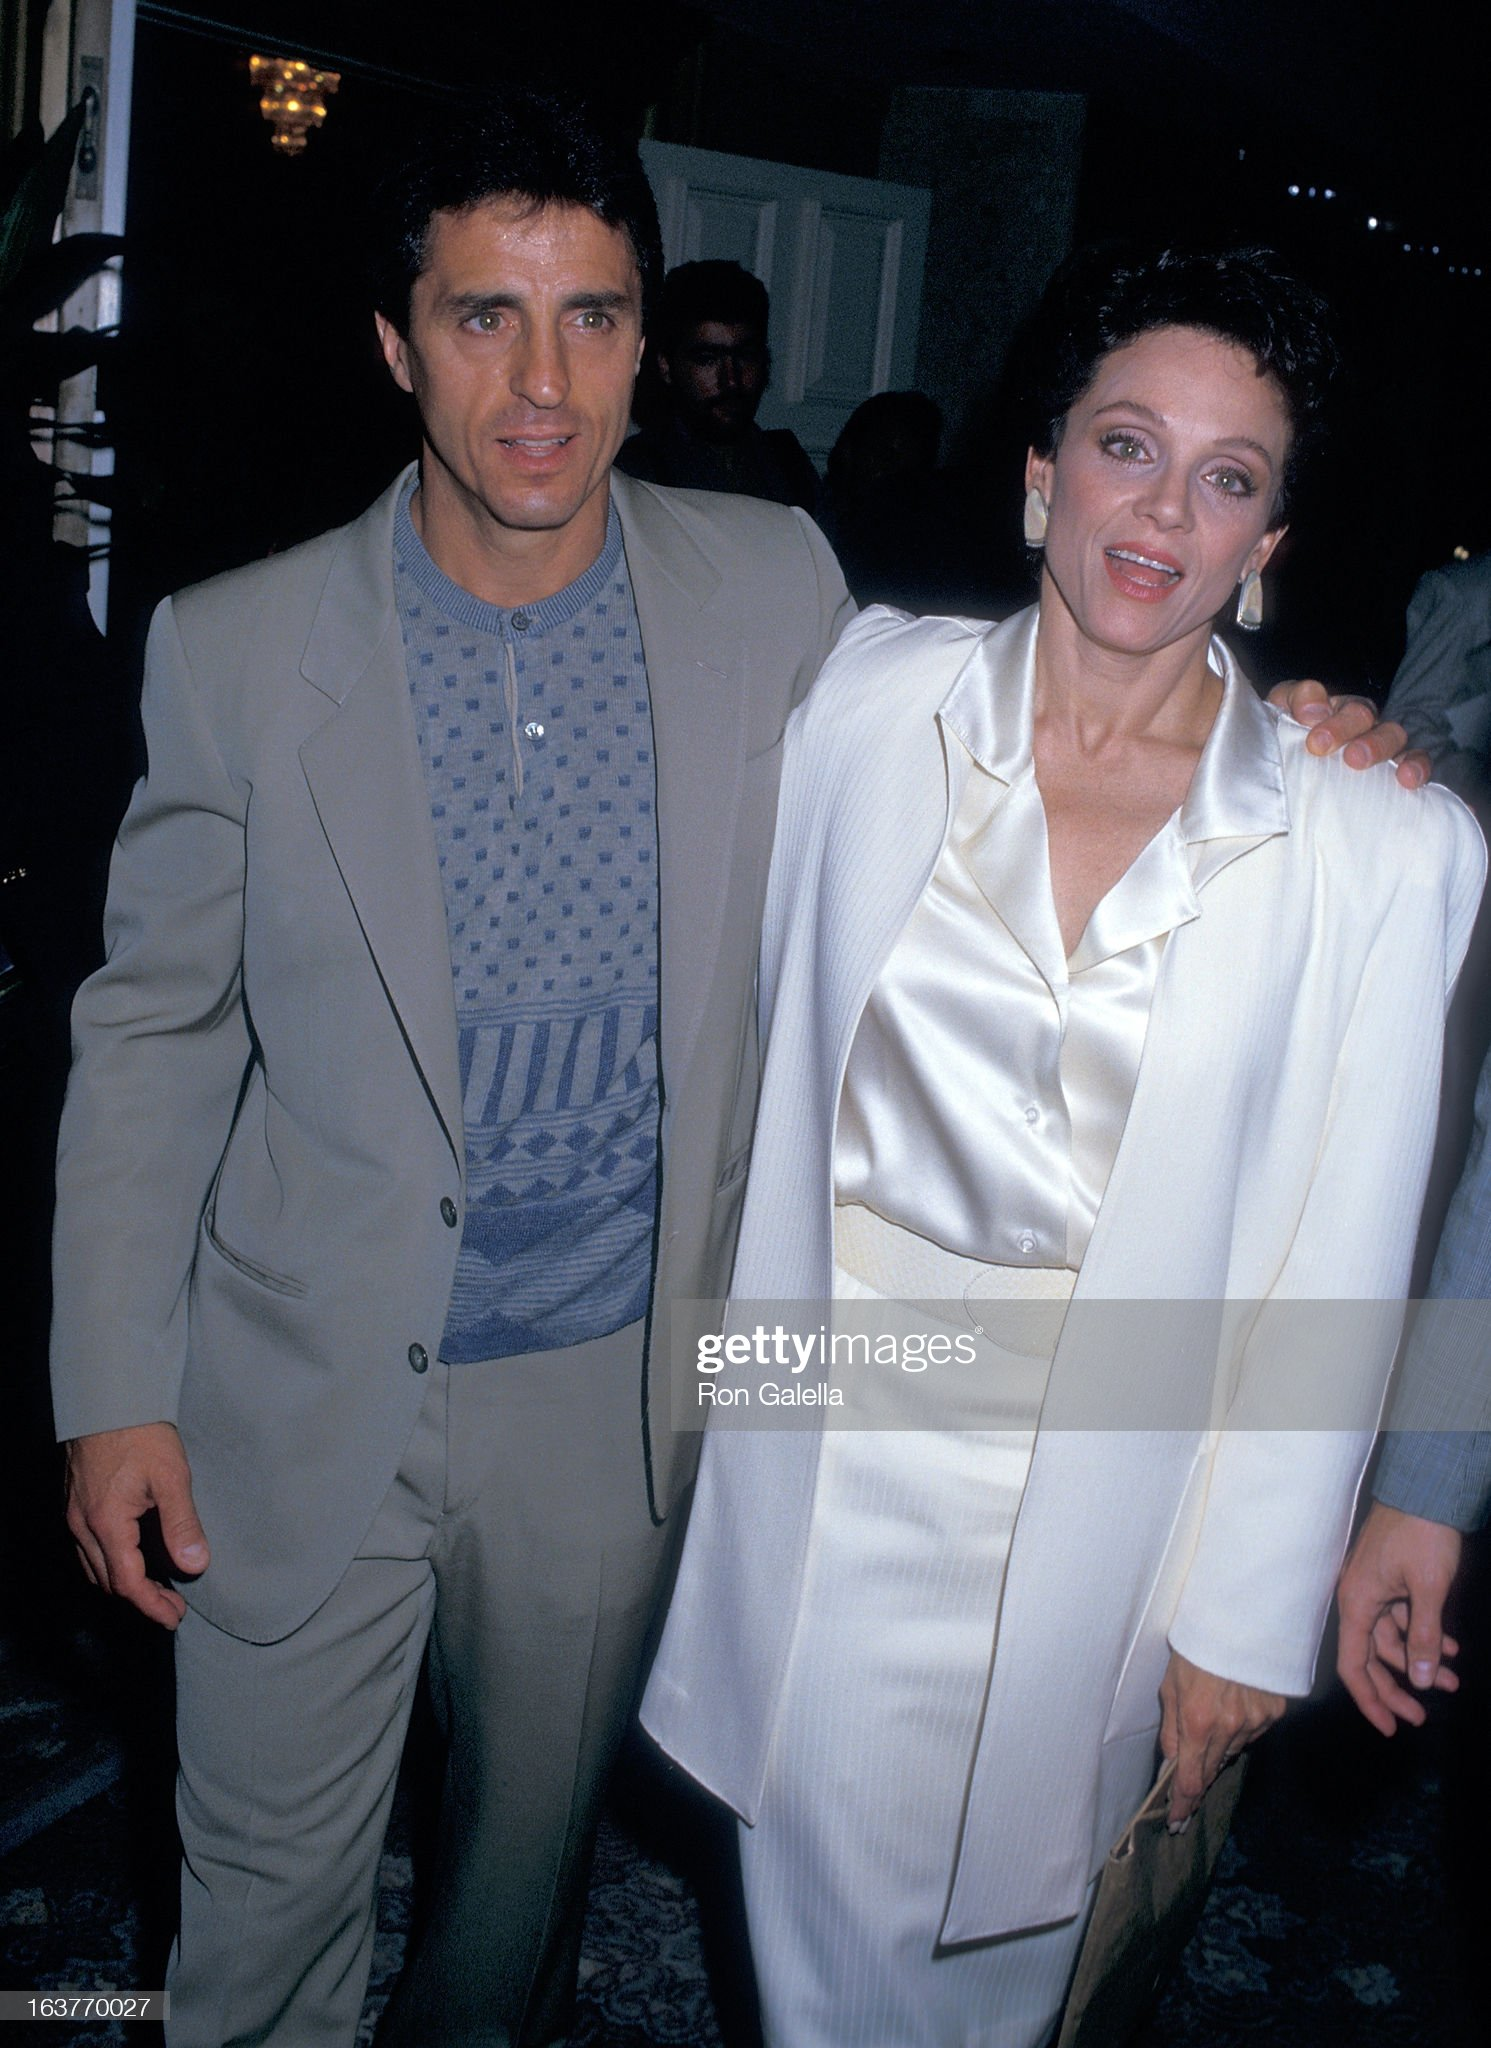 actress-valerie-harper-and-husband-tony-cacciotti-attend-valerie-picture-id163770027